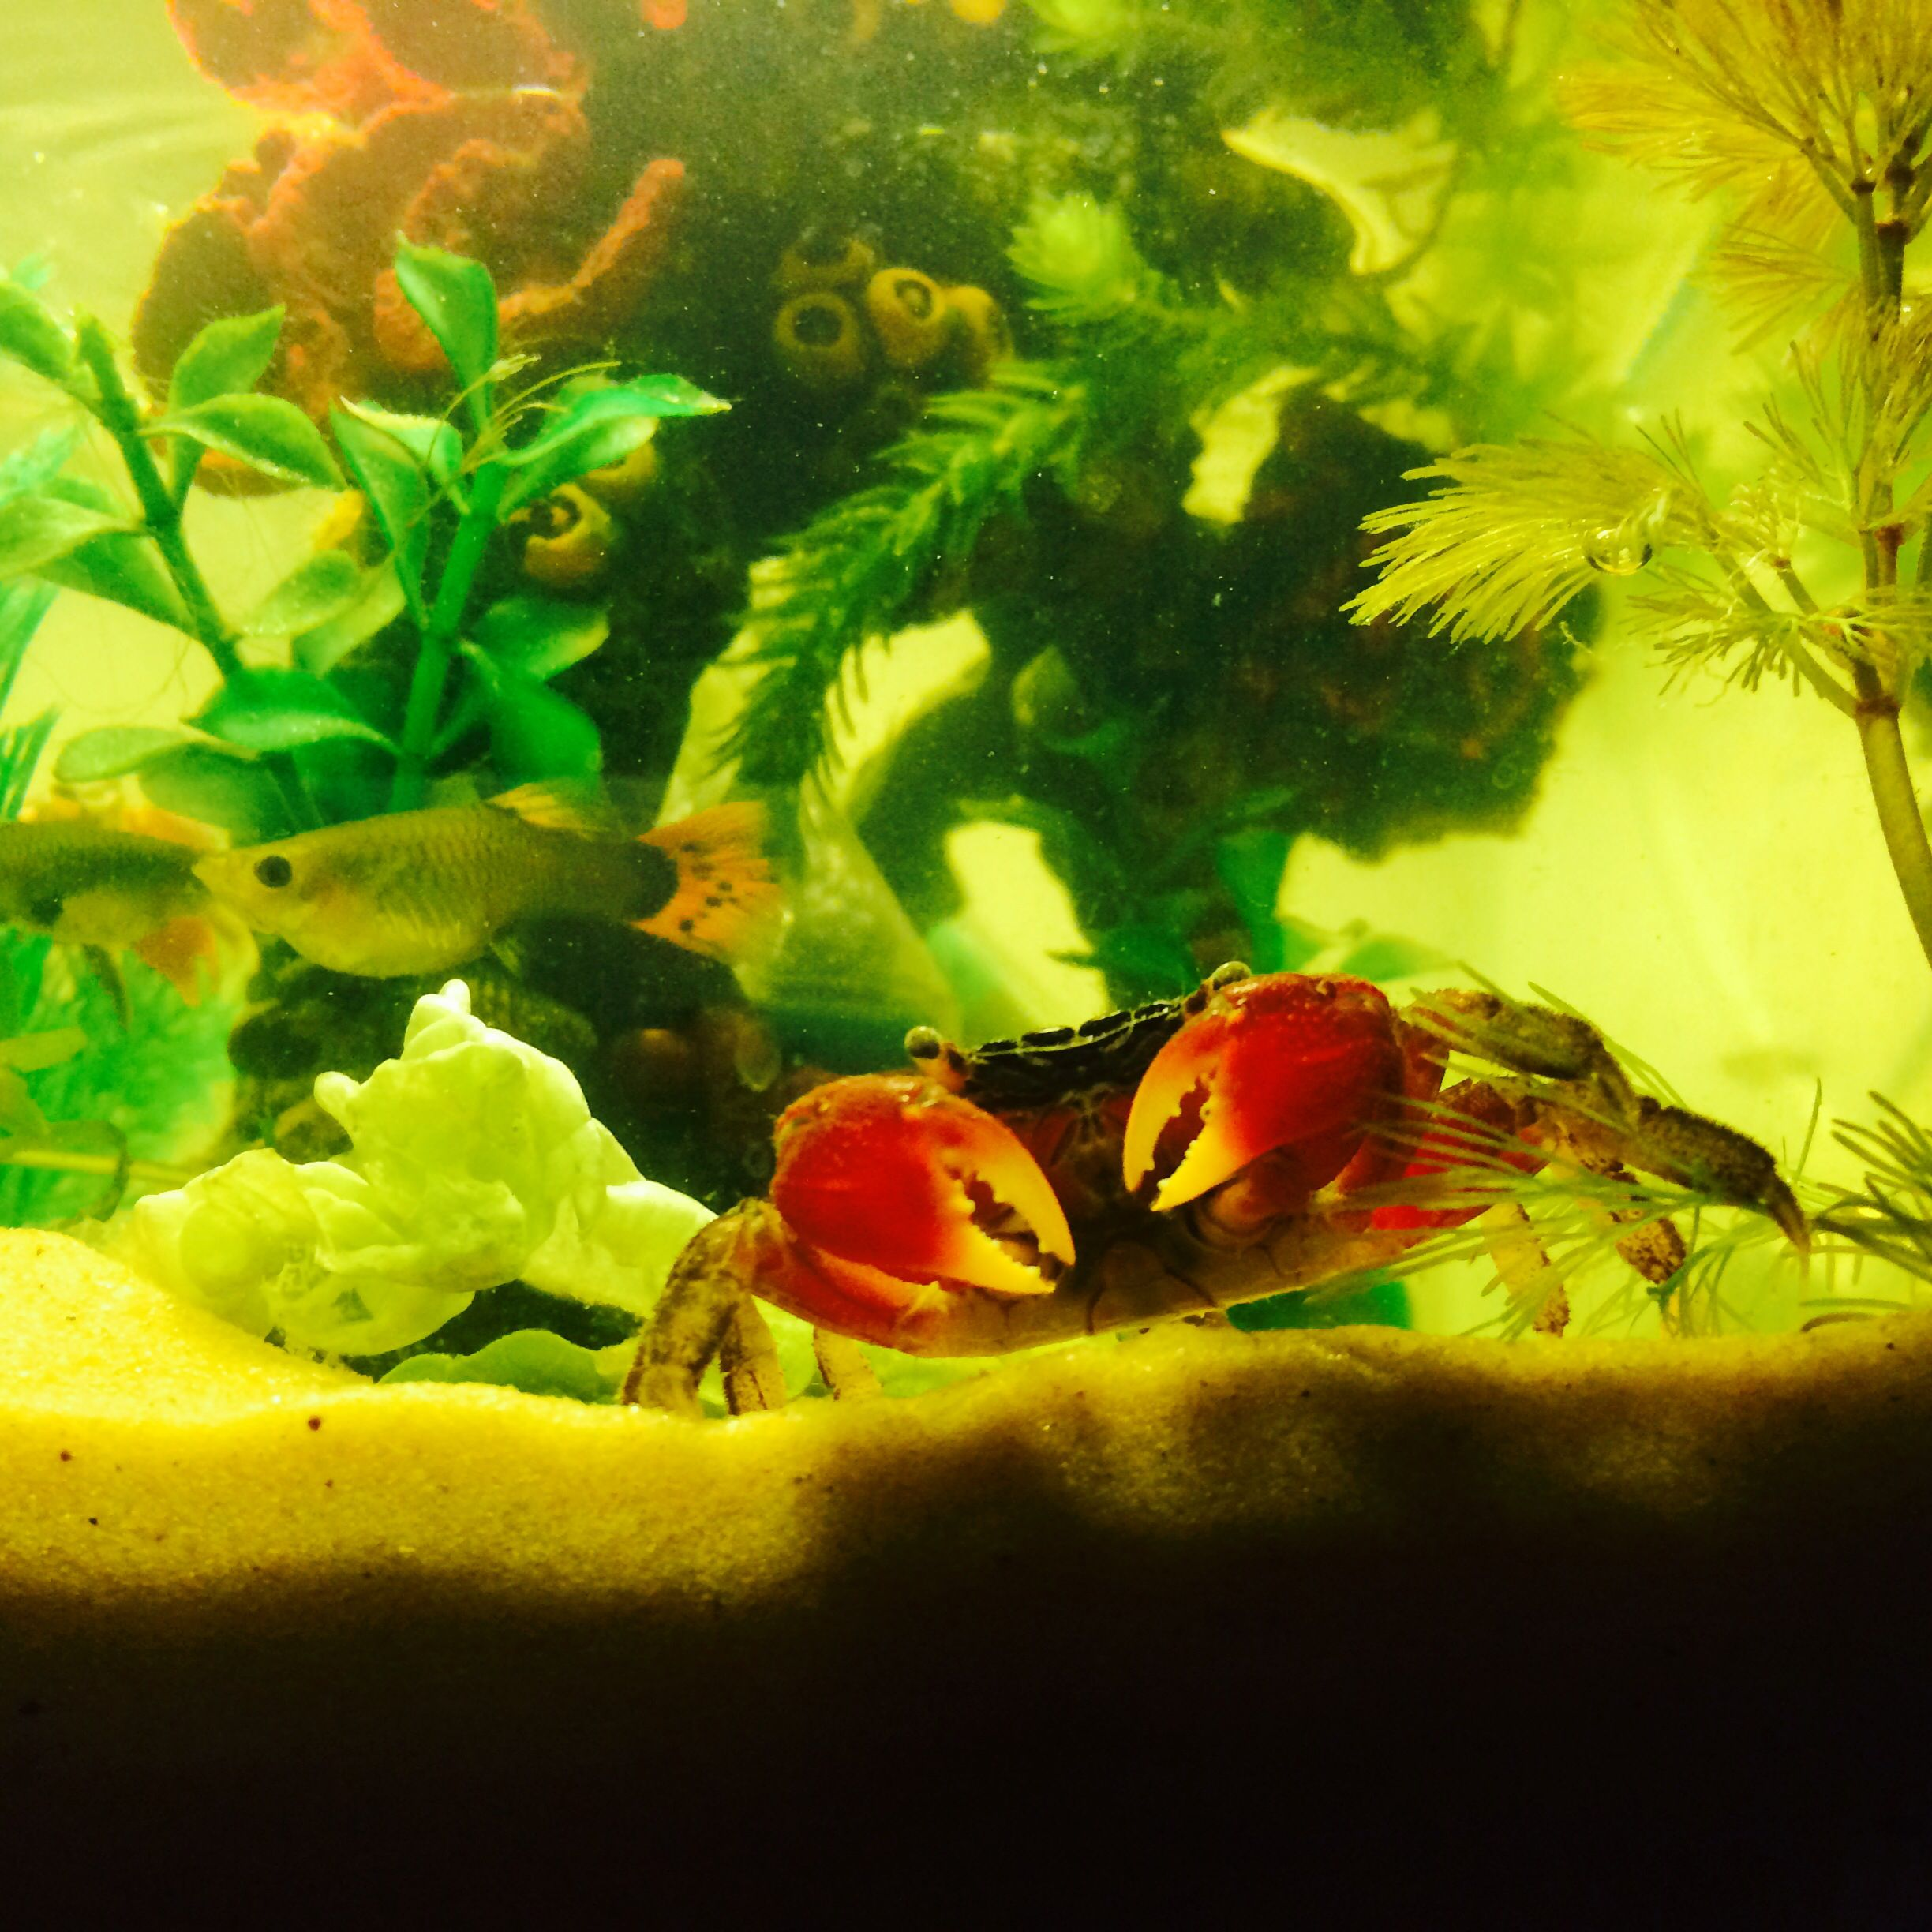 Some Thoughts About My Red Clawed Crab Tank